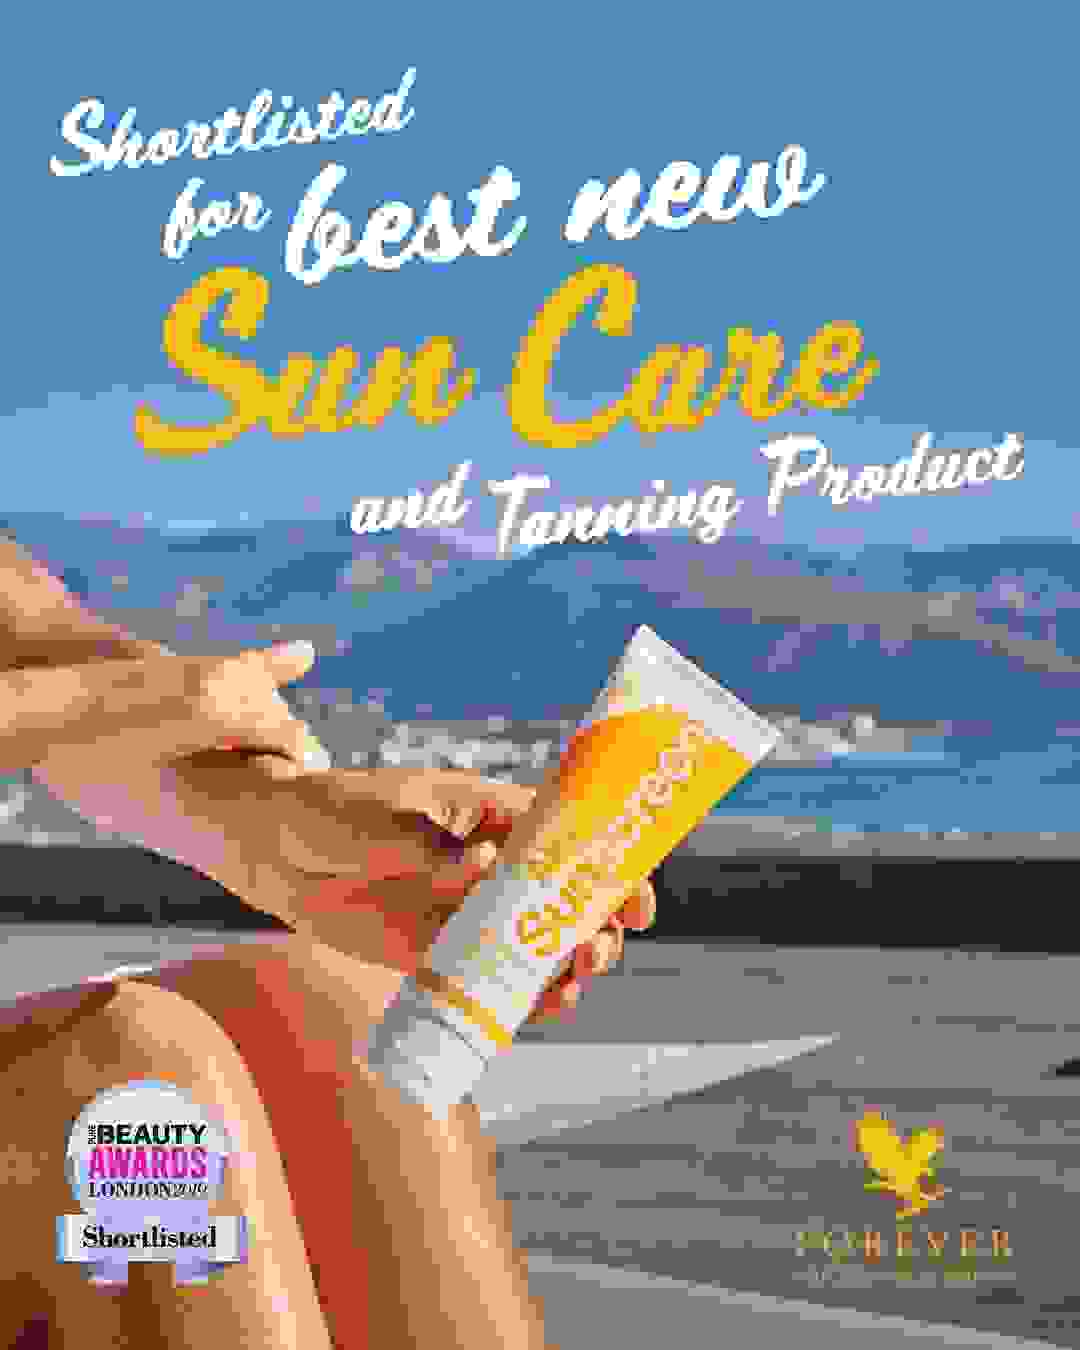 Aloe Sunscreen shortlisted for best new sun care and tanning product